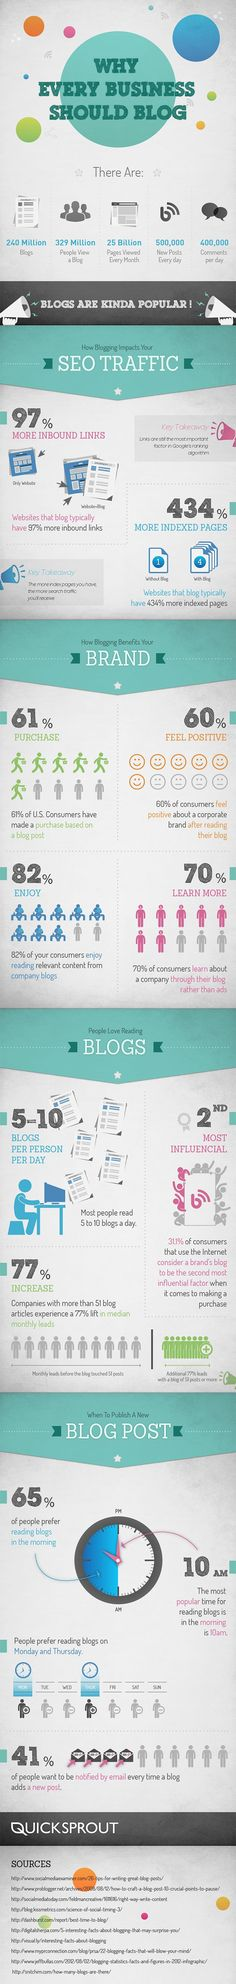 9 Reasons Why Your Internet Marketing Strategy Will Fail Without a Blog